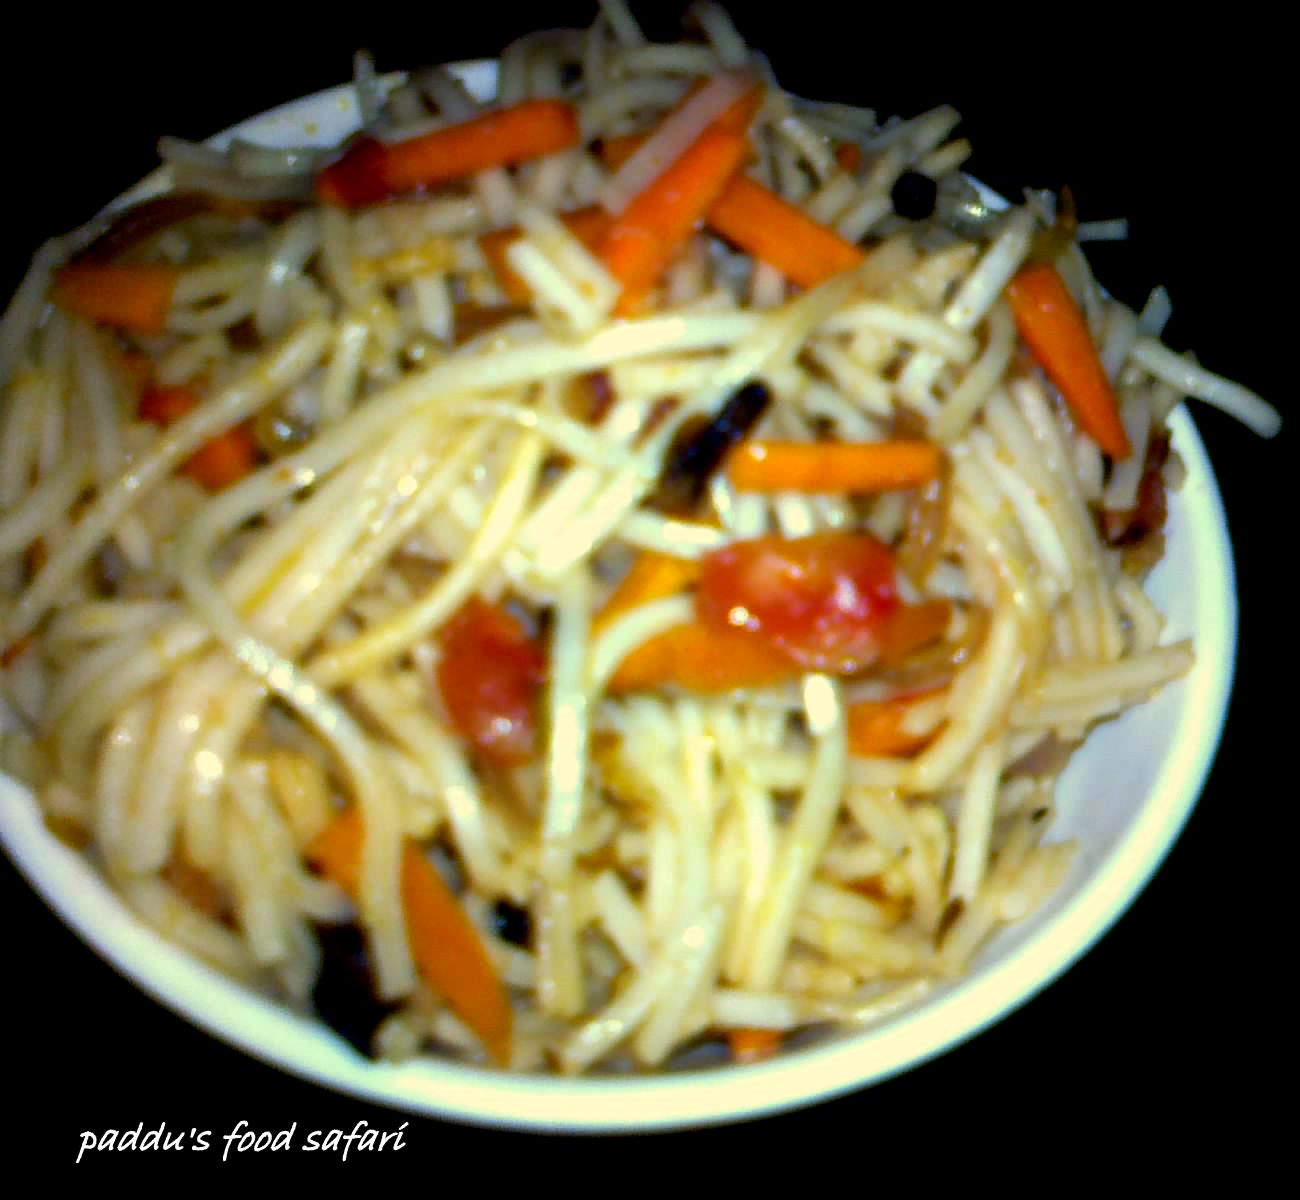 Noodles Masala Powder http://raikarsfoodsafari.blogspot.com/2011/12/noodles-1-pack-4-5-cloves-6-garlic.html